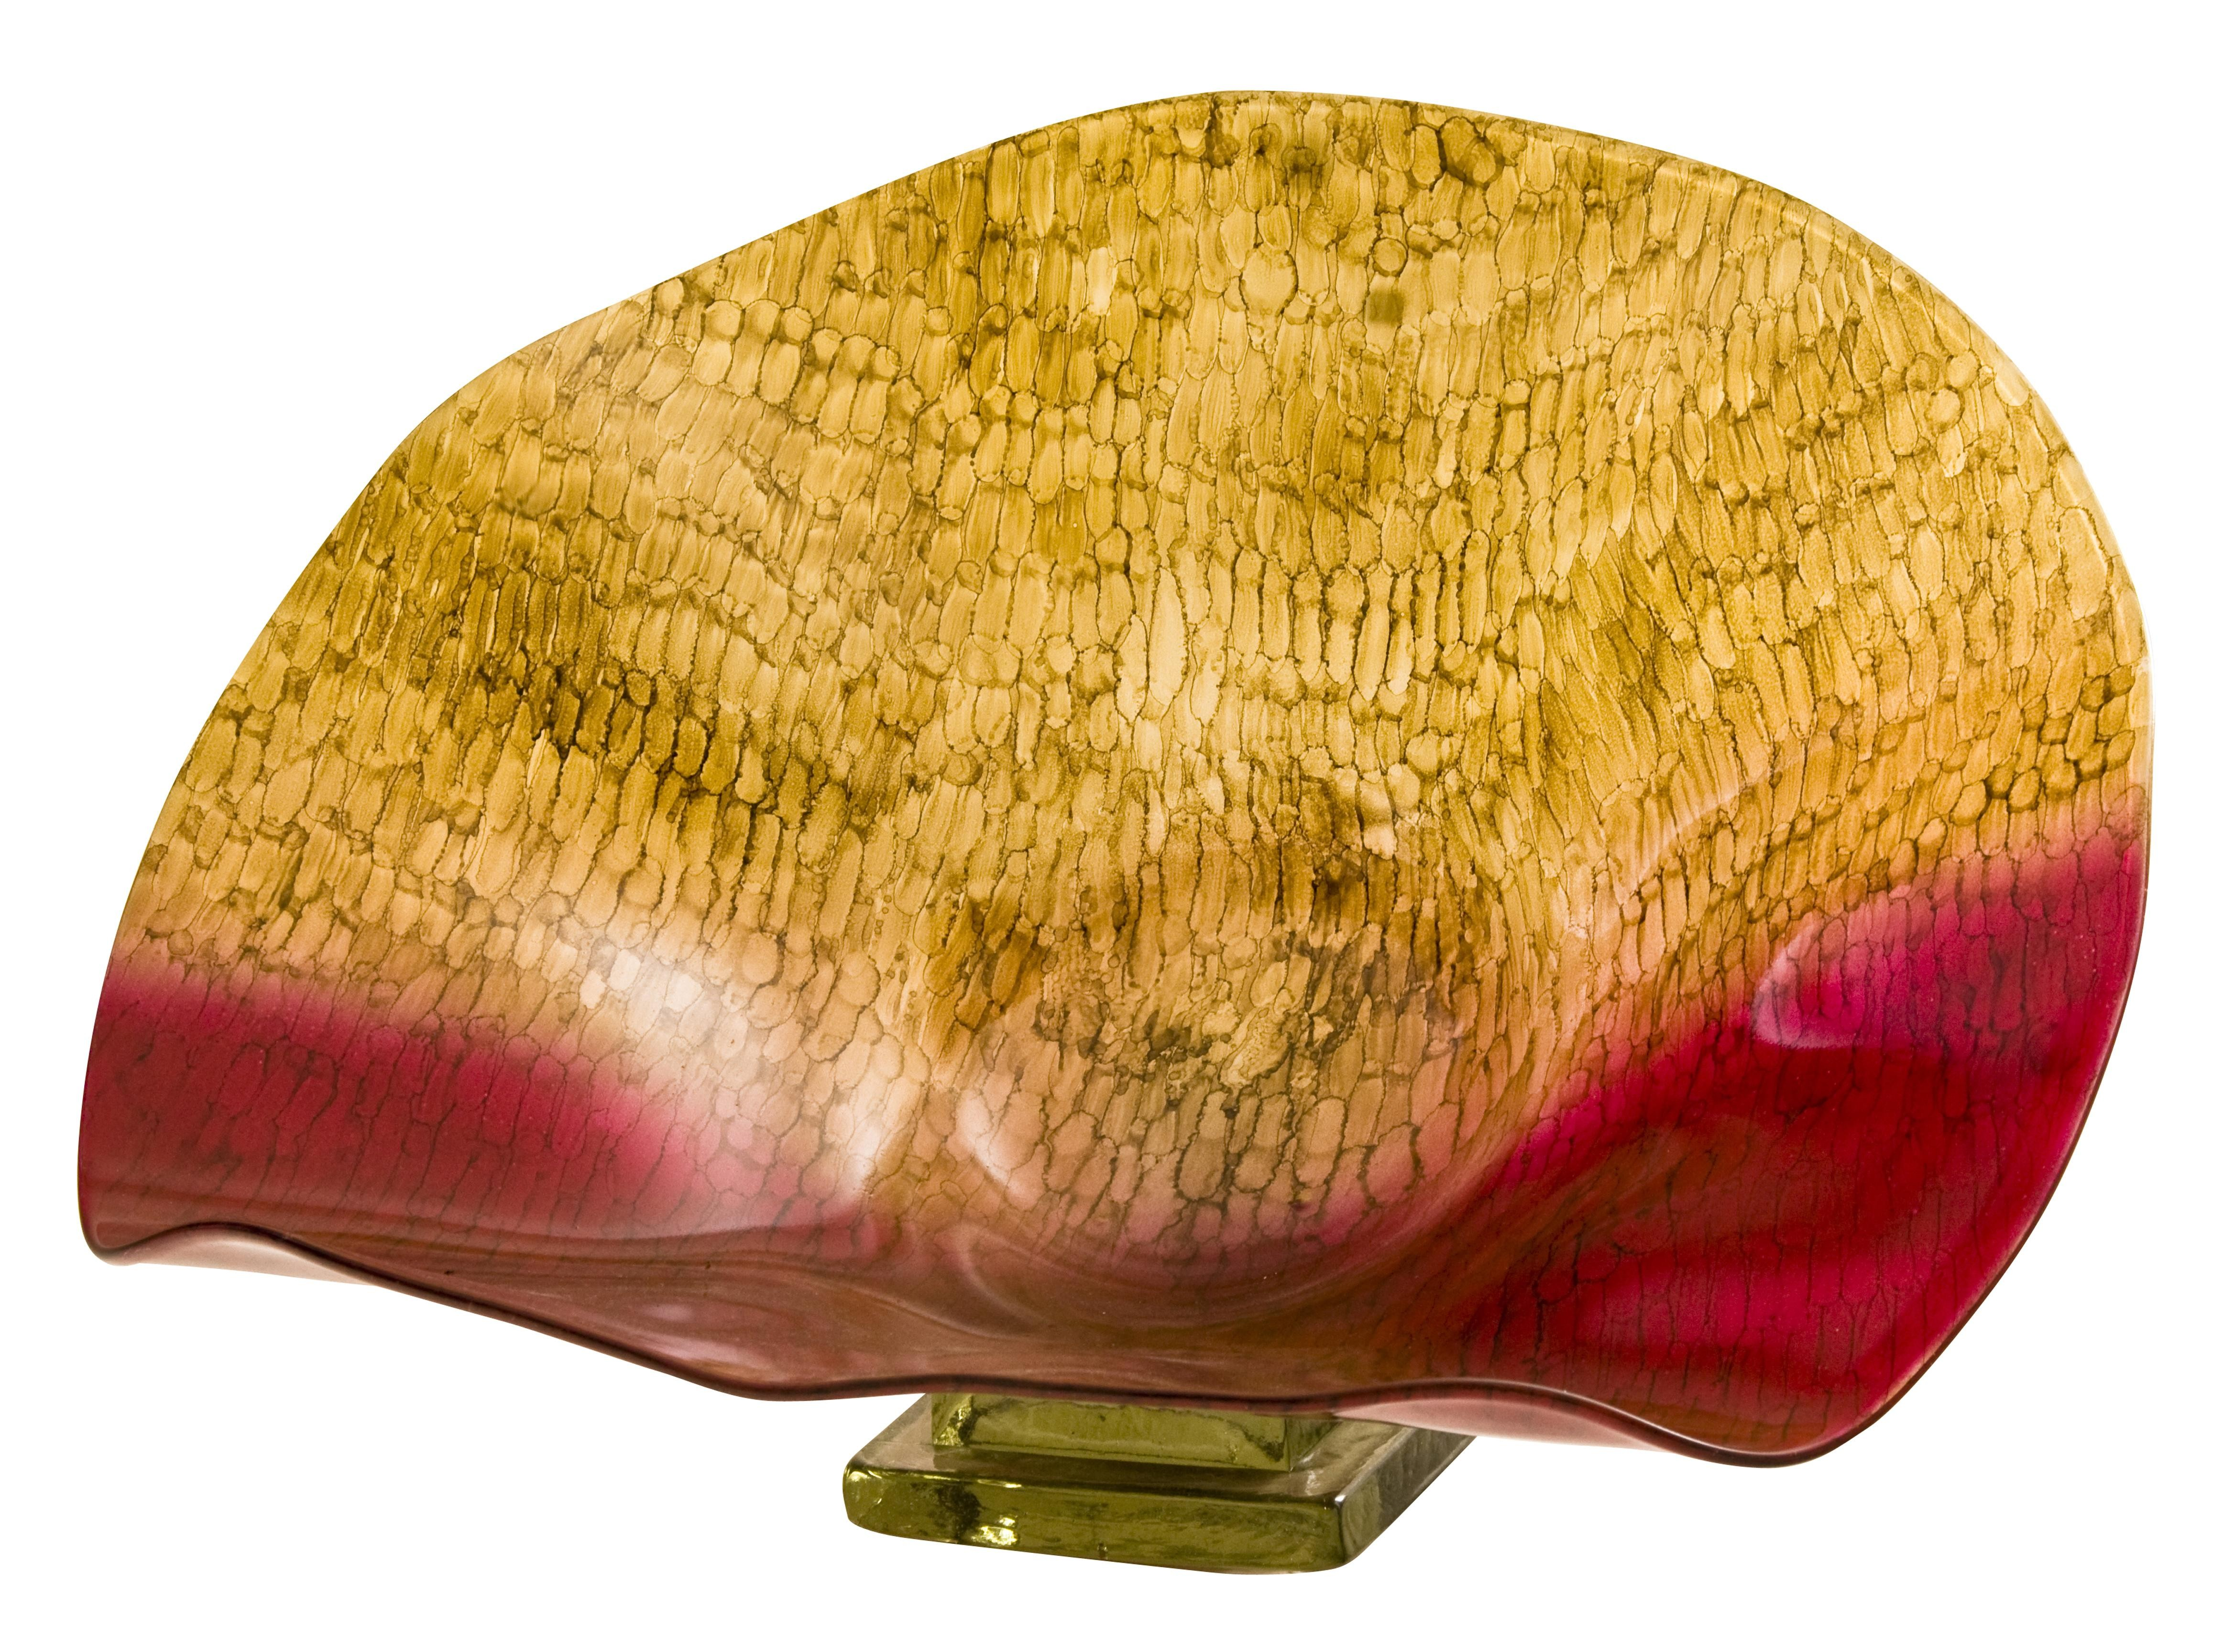 Handmade Blown Glass Seashell Bowl  with Scaled in Red and Caramel finish